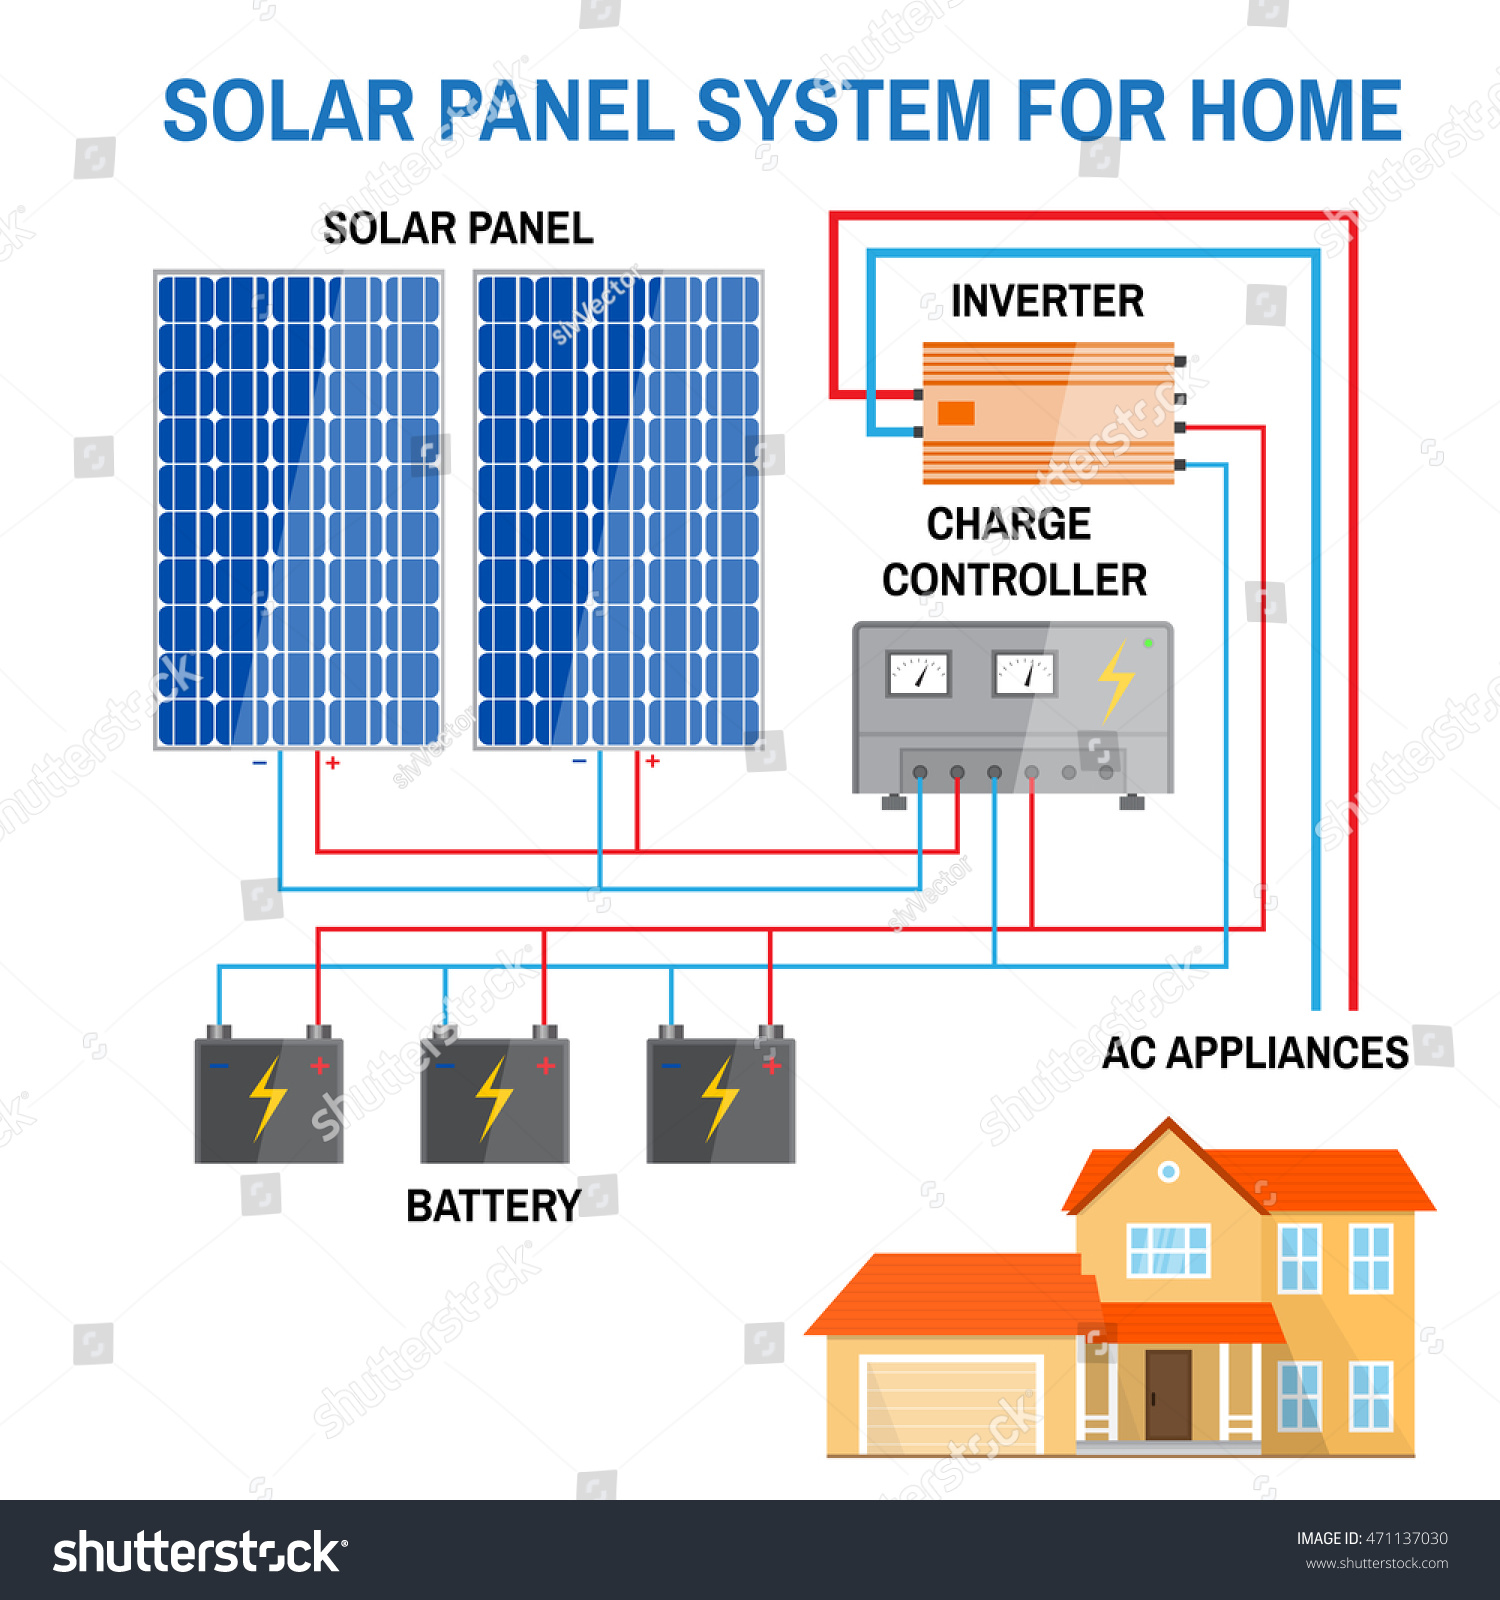 solar panel system home renewable energy stock vector royalty free